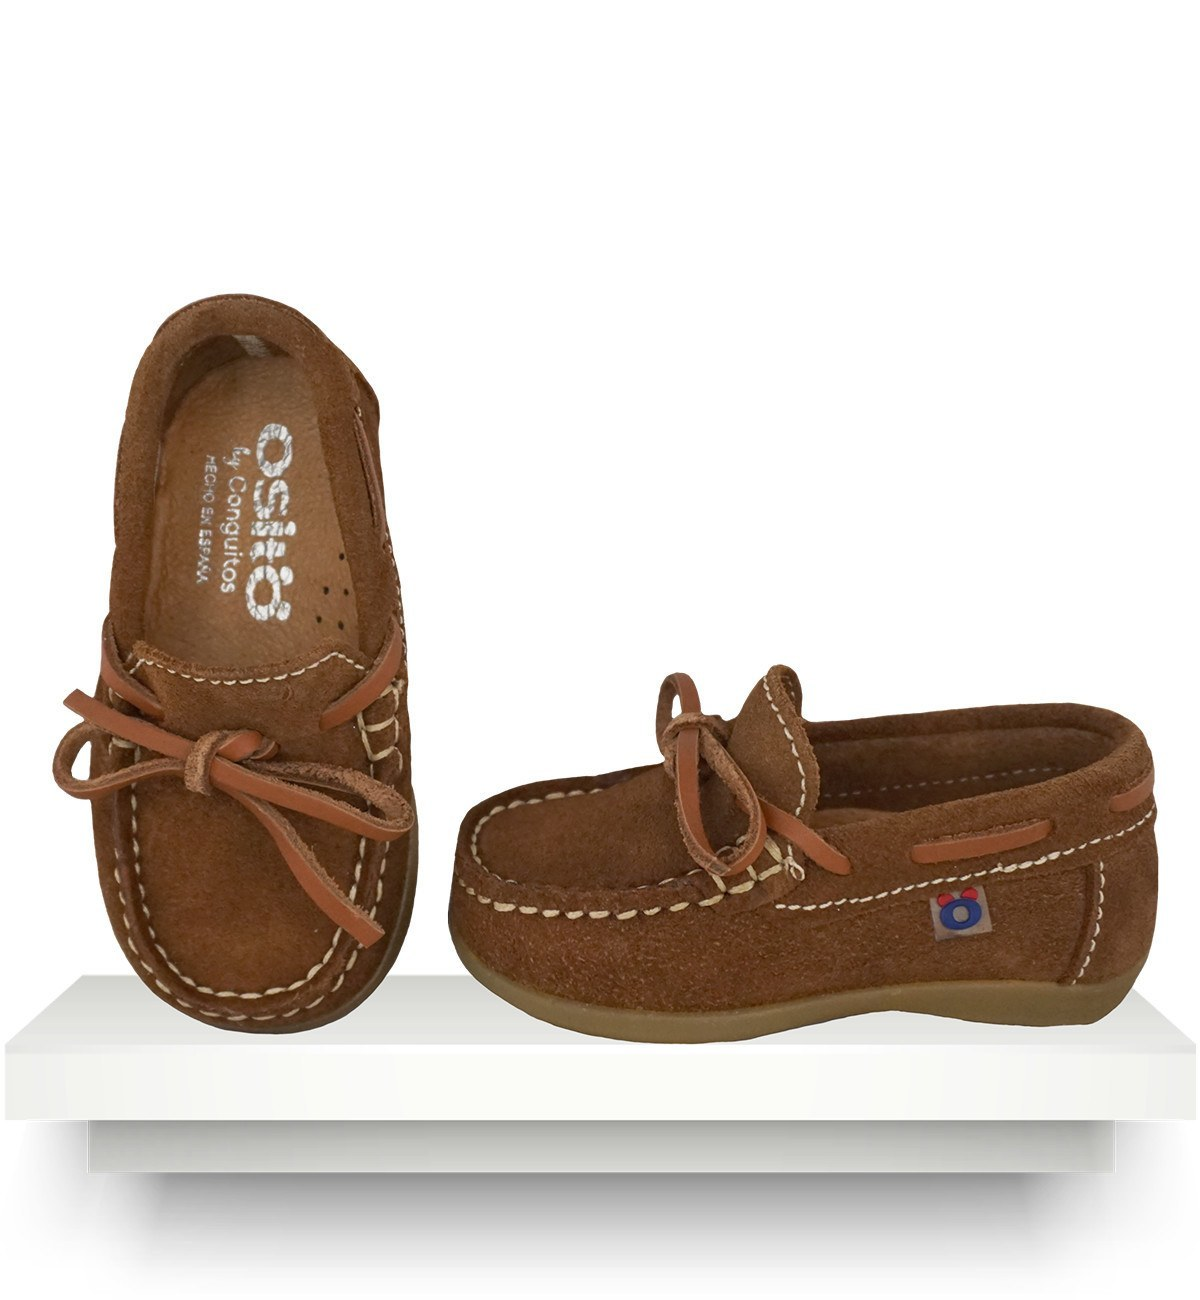 Spanish baby clothes | baby shoes | Brown moccasins |babymaC  - 1